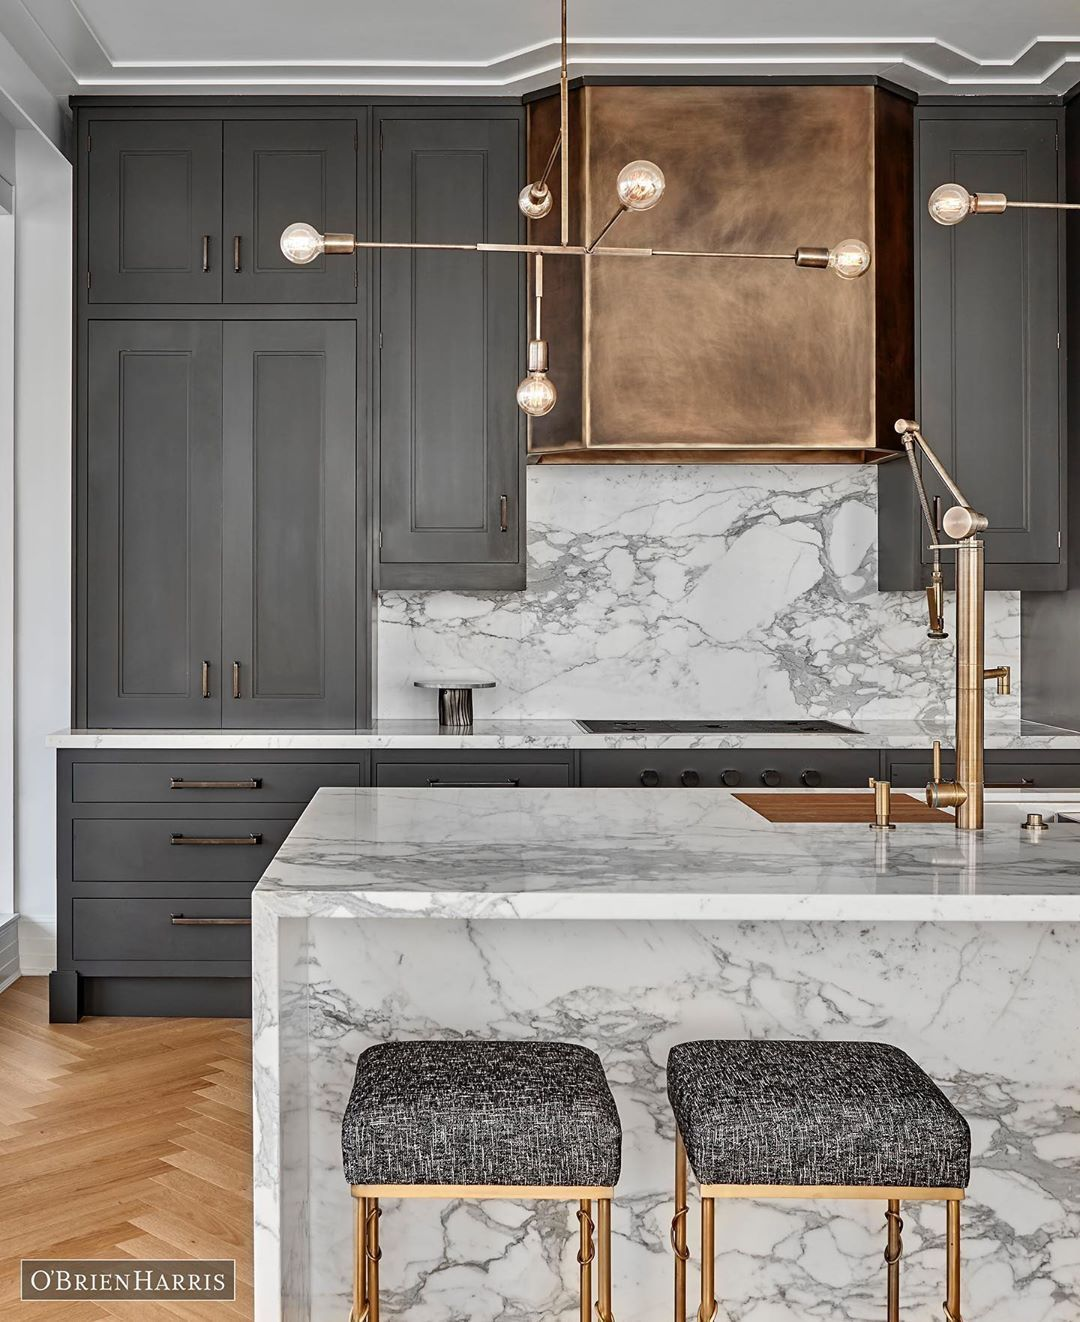 home accents luxury #home #accents #homeaccents OBrien Harris on Instagram: Hand painted charcoal cabinetry with burnished brass accents combine for this luxurious look. nateberkus soluriphoto . . . . . . . . . . #strandhuis